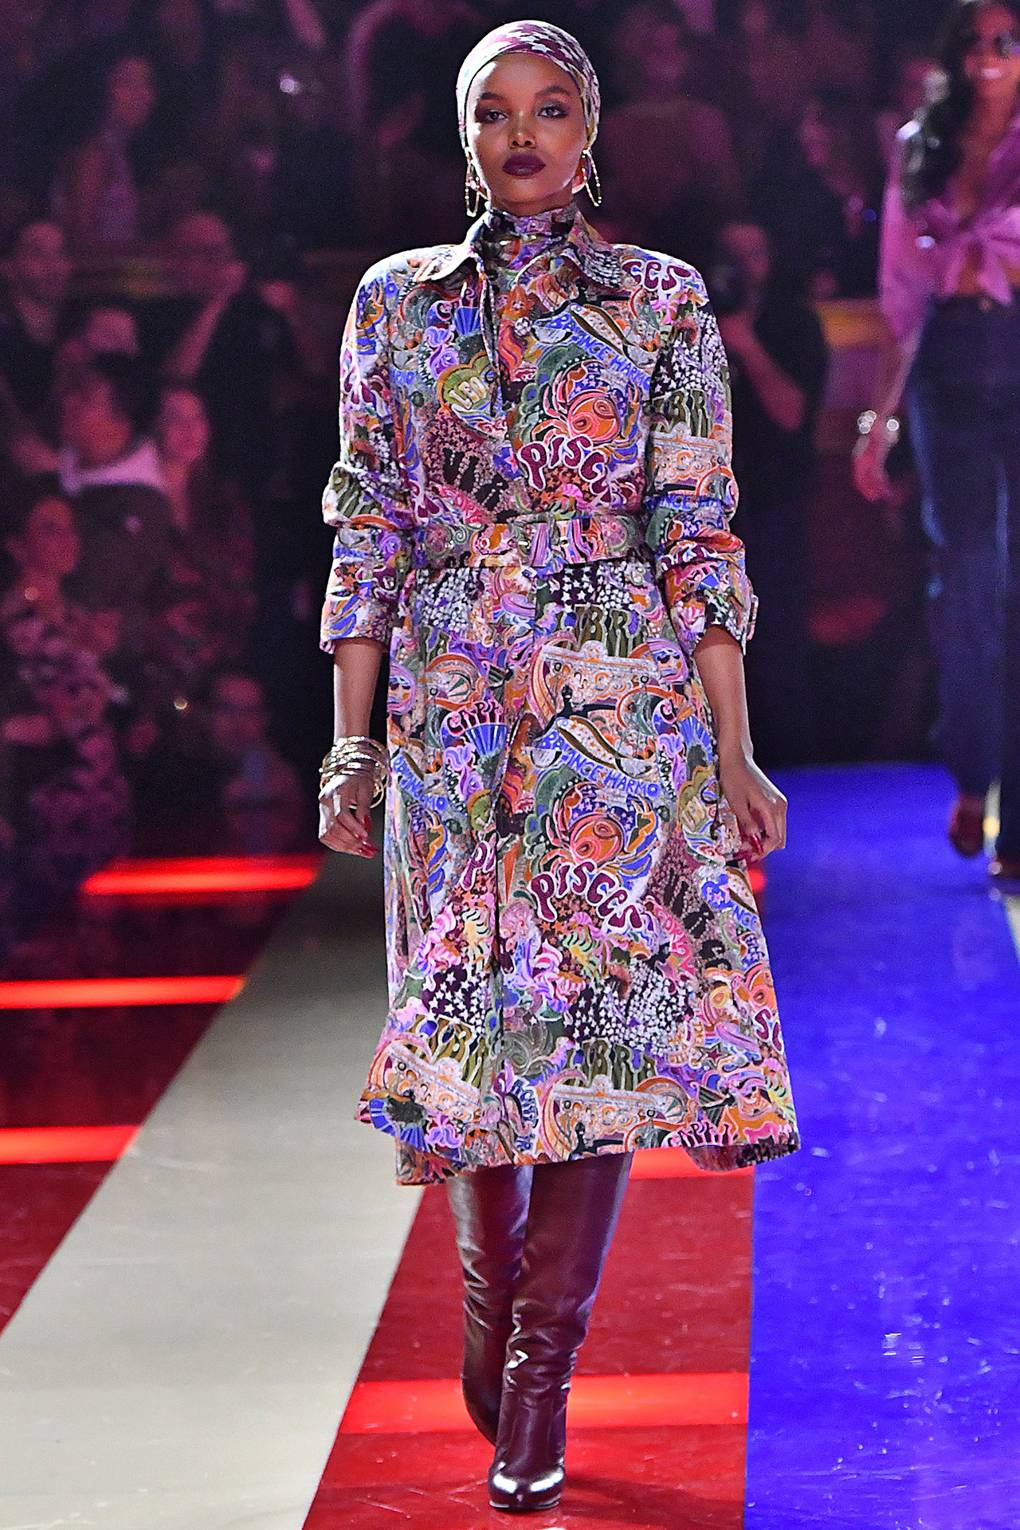 40441c12 Tommy Hilfiger And Zendaya's AW19 Paris Fashion Week Show Was All Kinds Of  Epic | Glamour UK